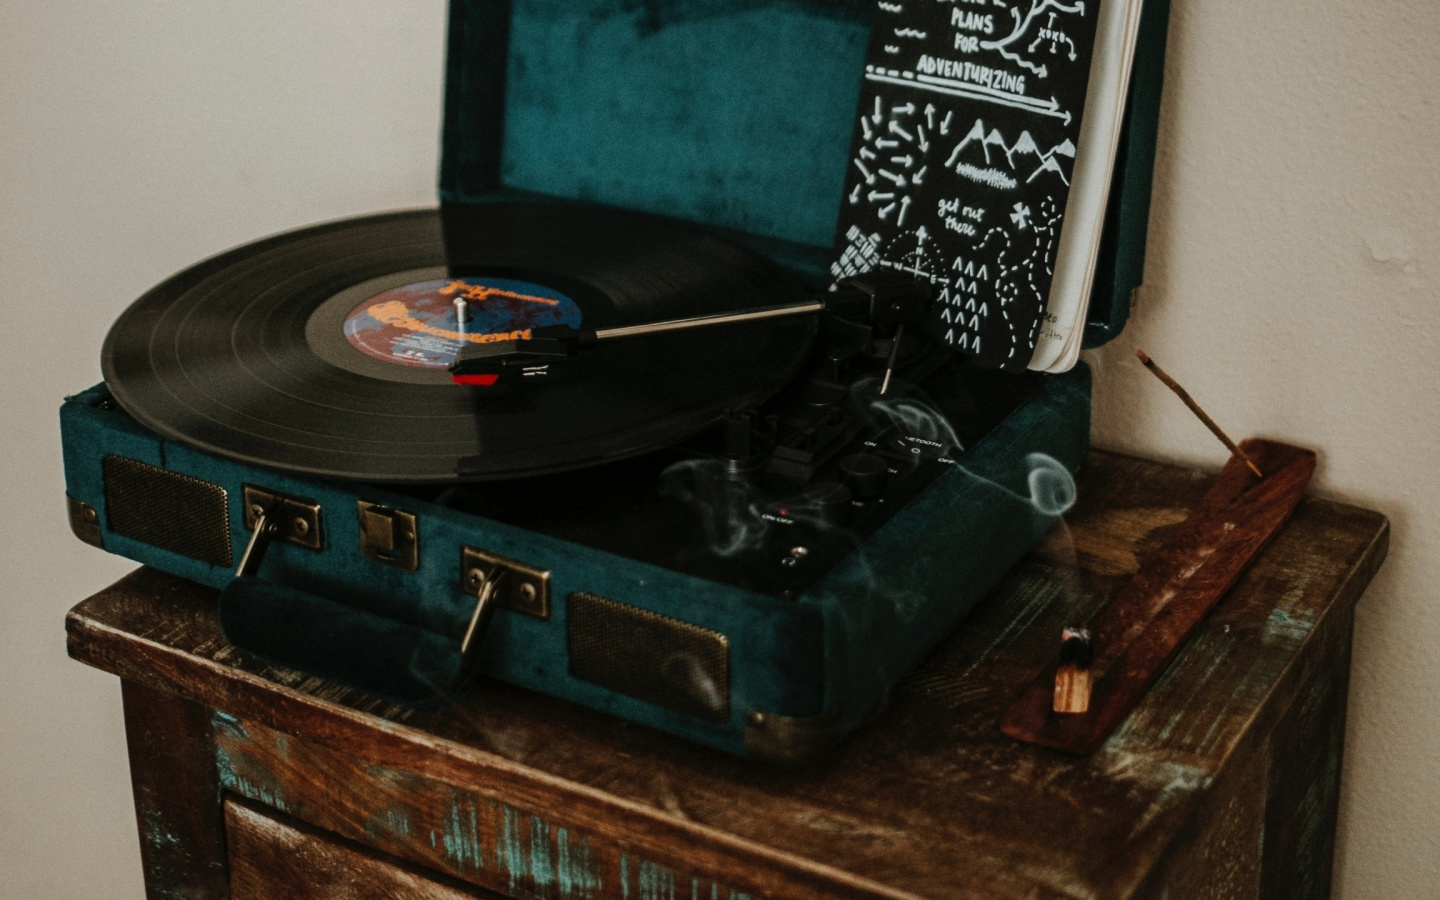 1440x900 Vinyl Record Player Desktop PC And Mac Wallpaper